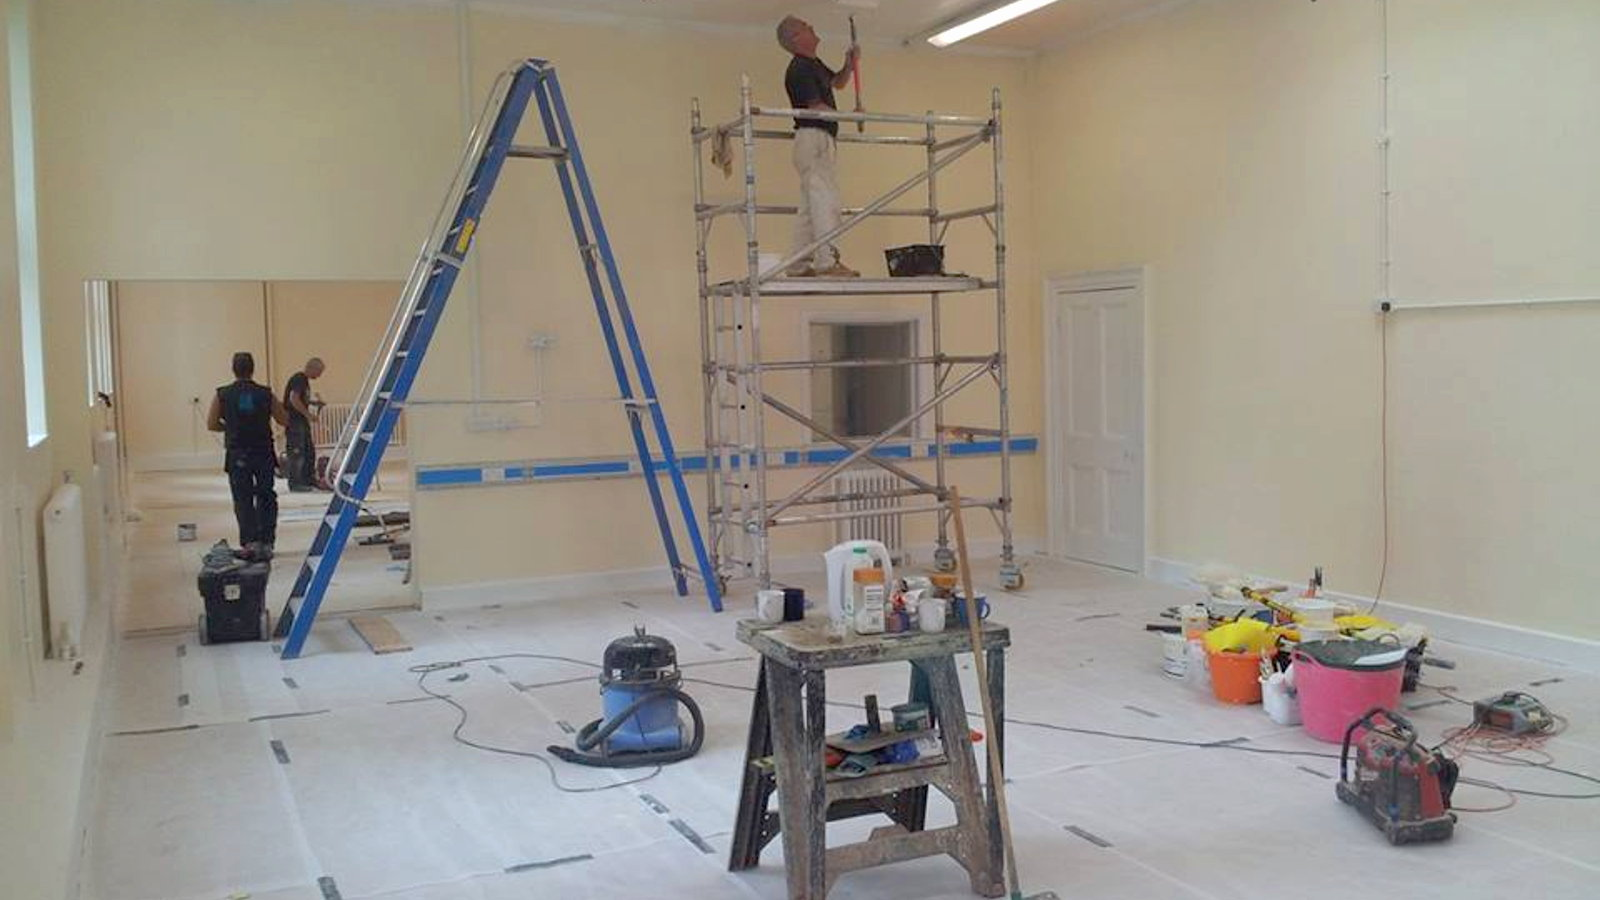 Decorating & Tiling - All Trade Property Services